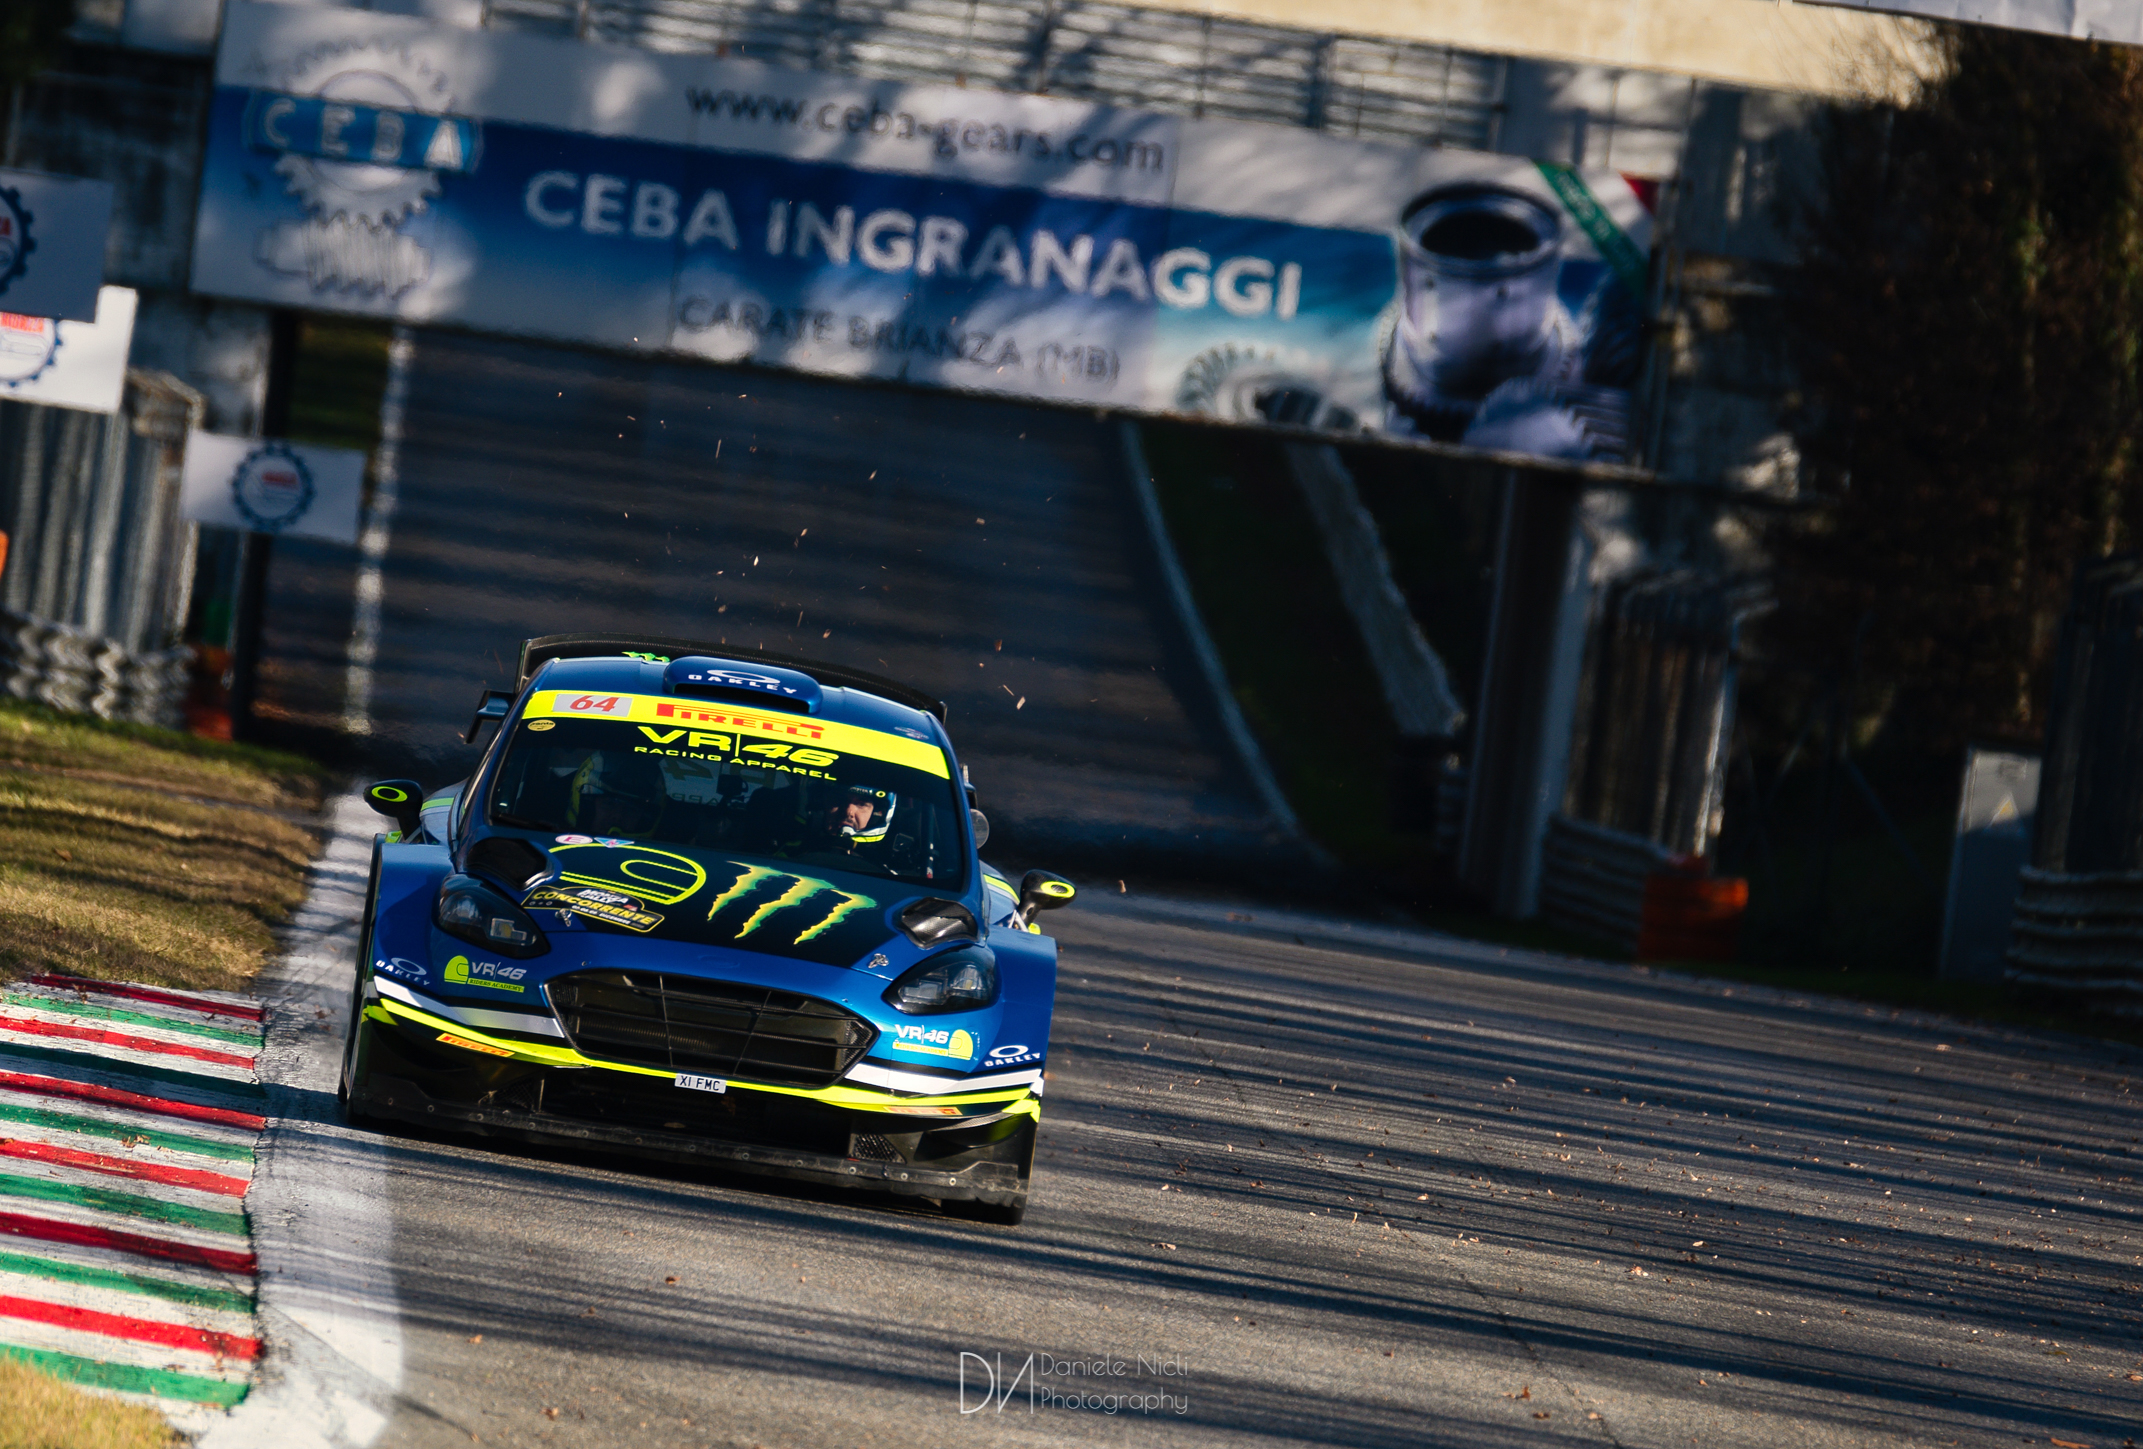 Monza Rally Show '18...